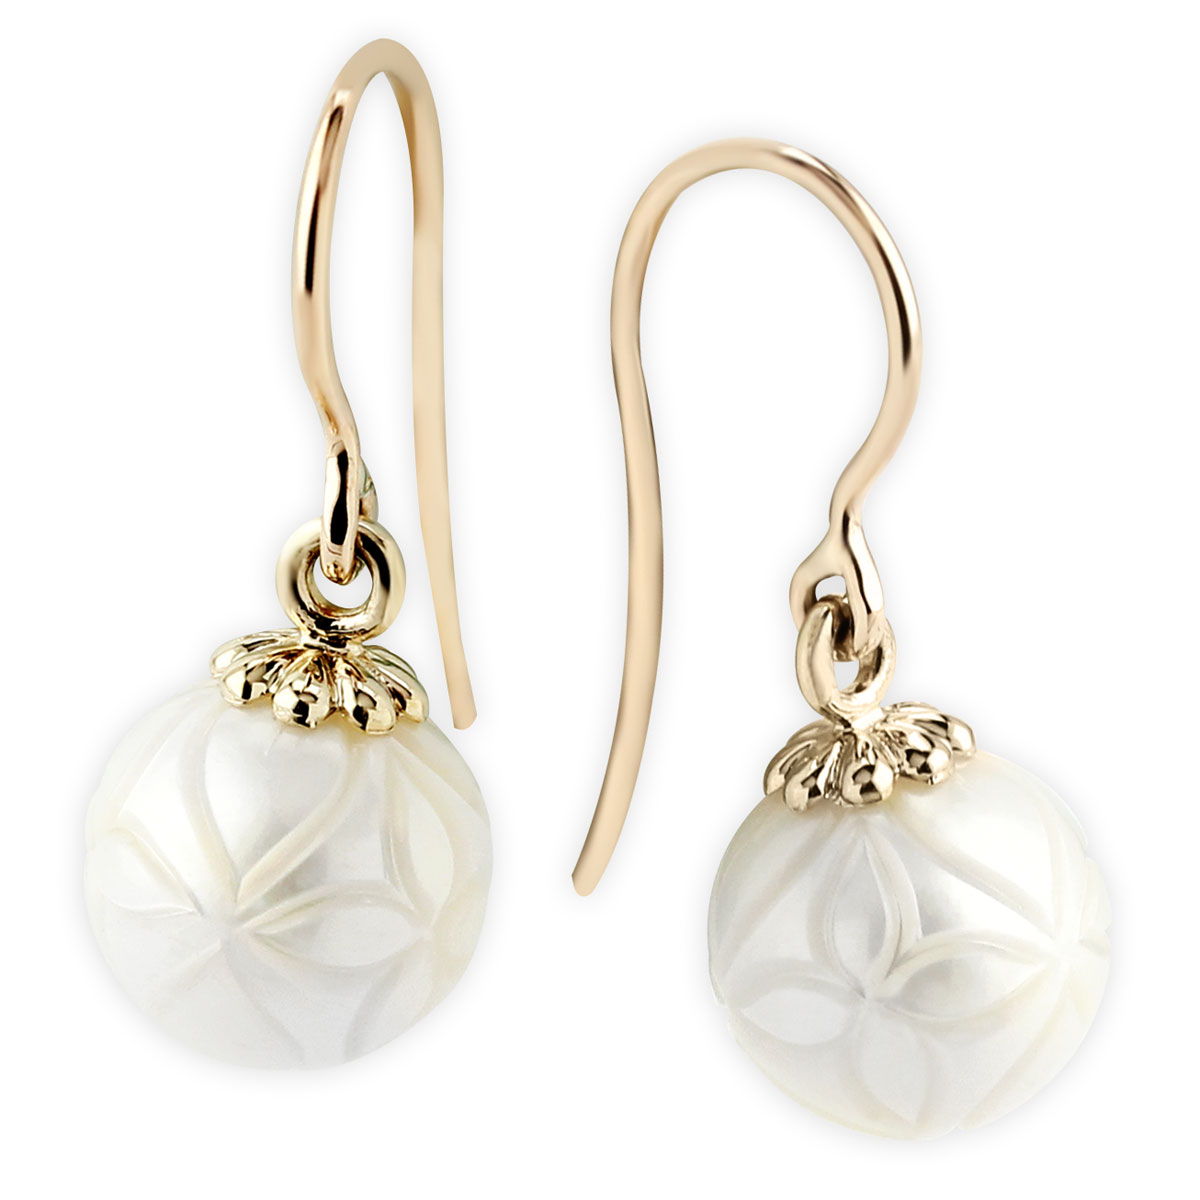 342106-Galatea Harlequin Design Pearls YG Earrings